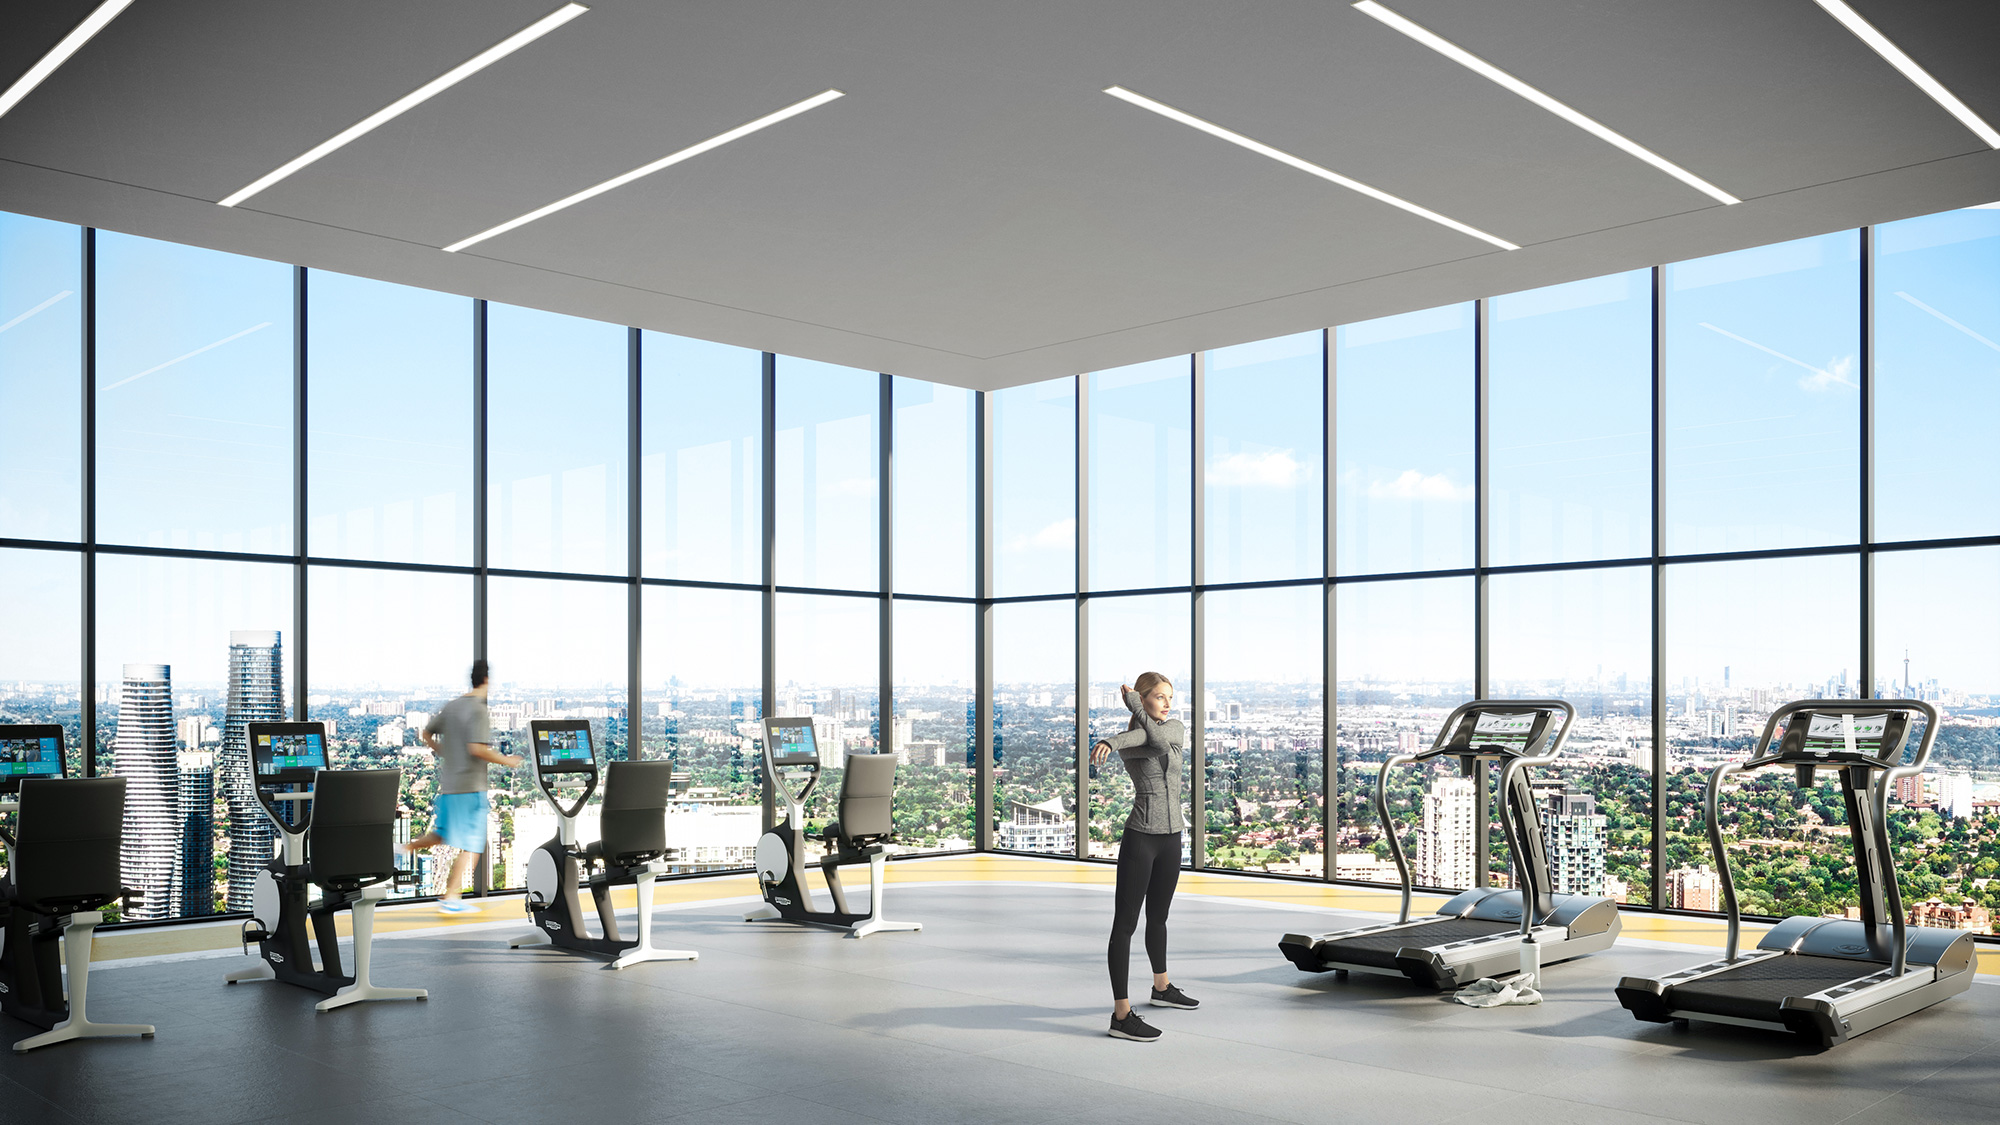 exchange-district-mississauga-square-one-condos-ex2-sky-gym